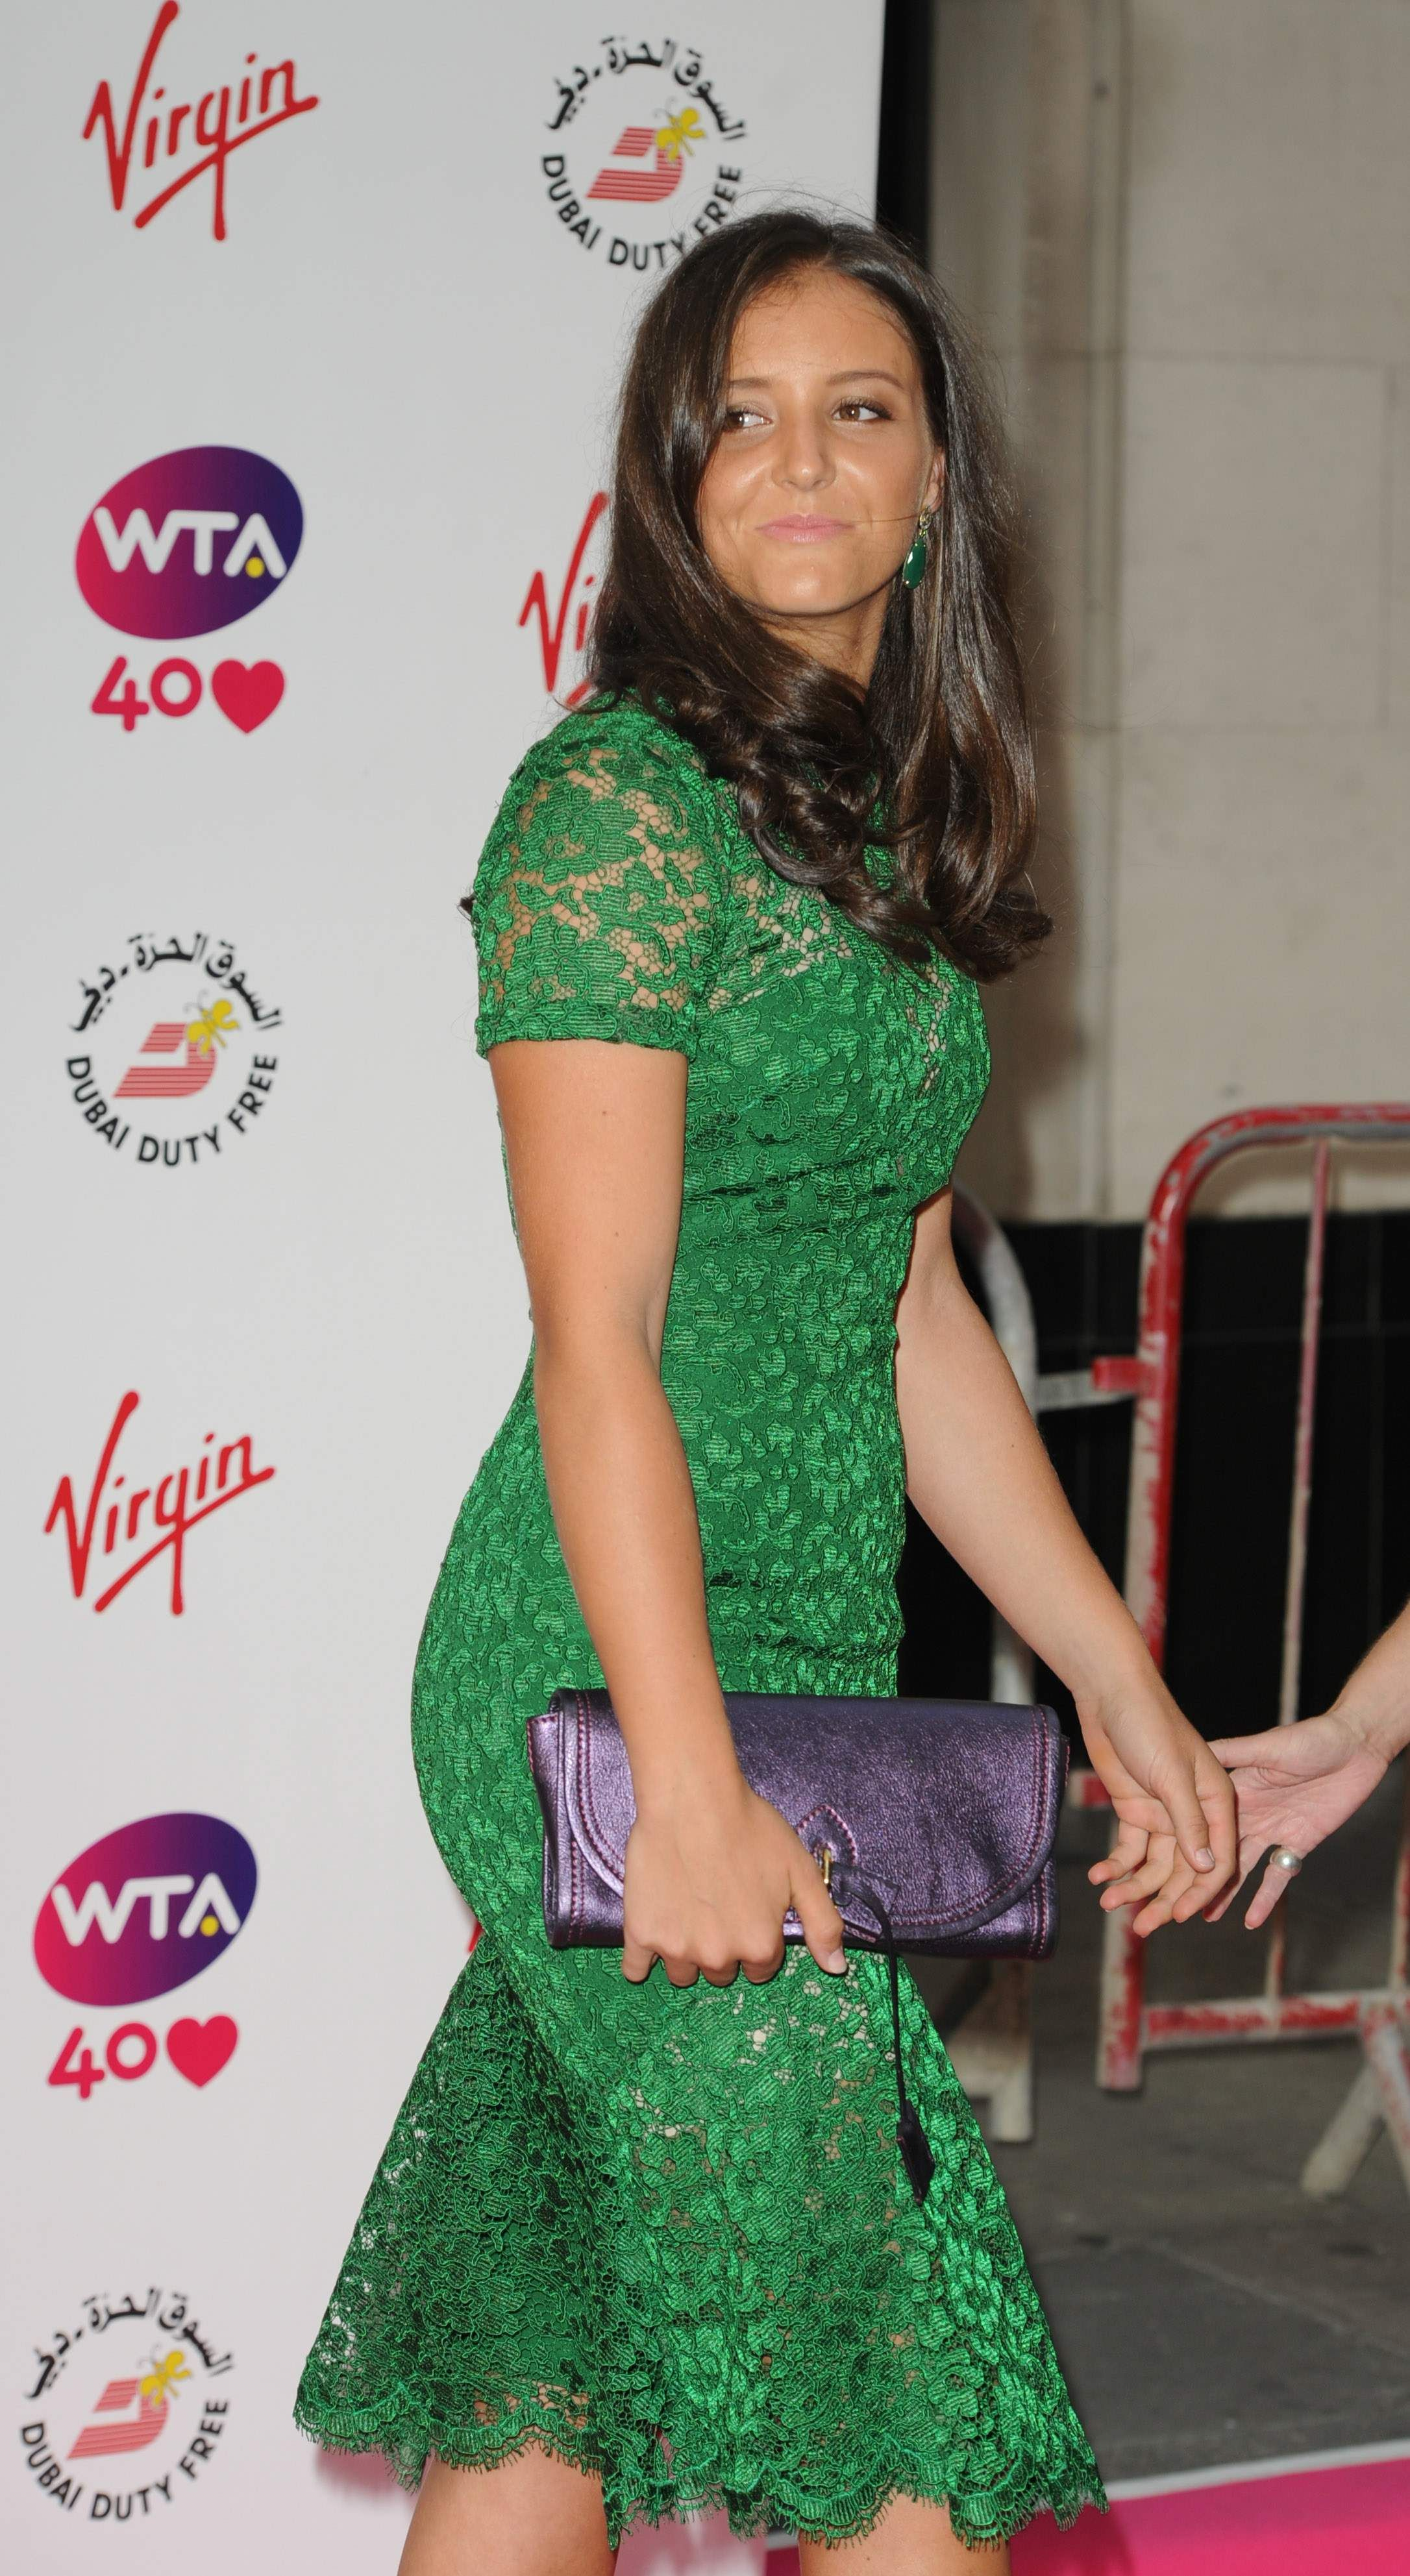 Laura Robson Pre Wimbledon Party Held At The Kensington Roof Gardens June 20 2013 Wta Fashion Sports Women Wimbledon Party